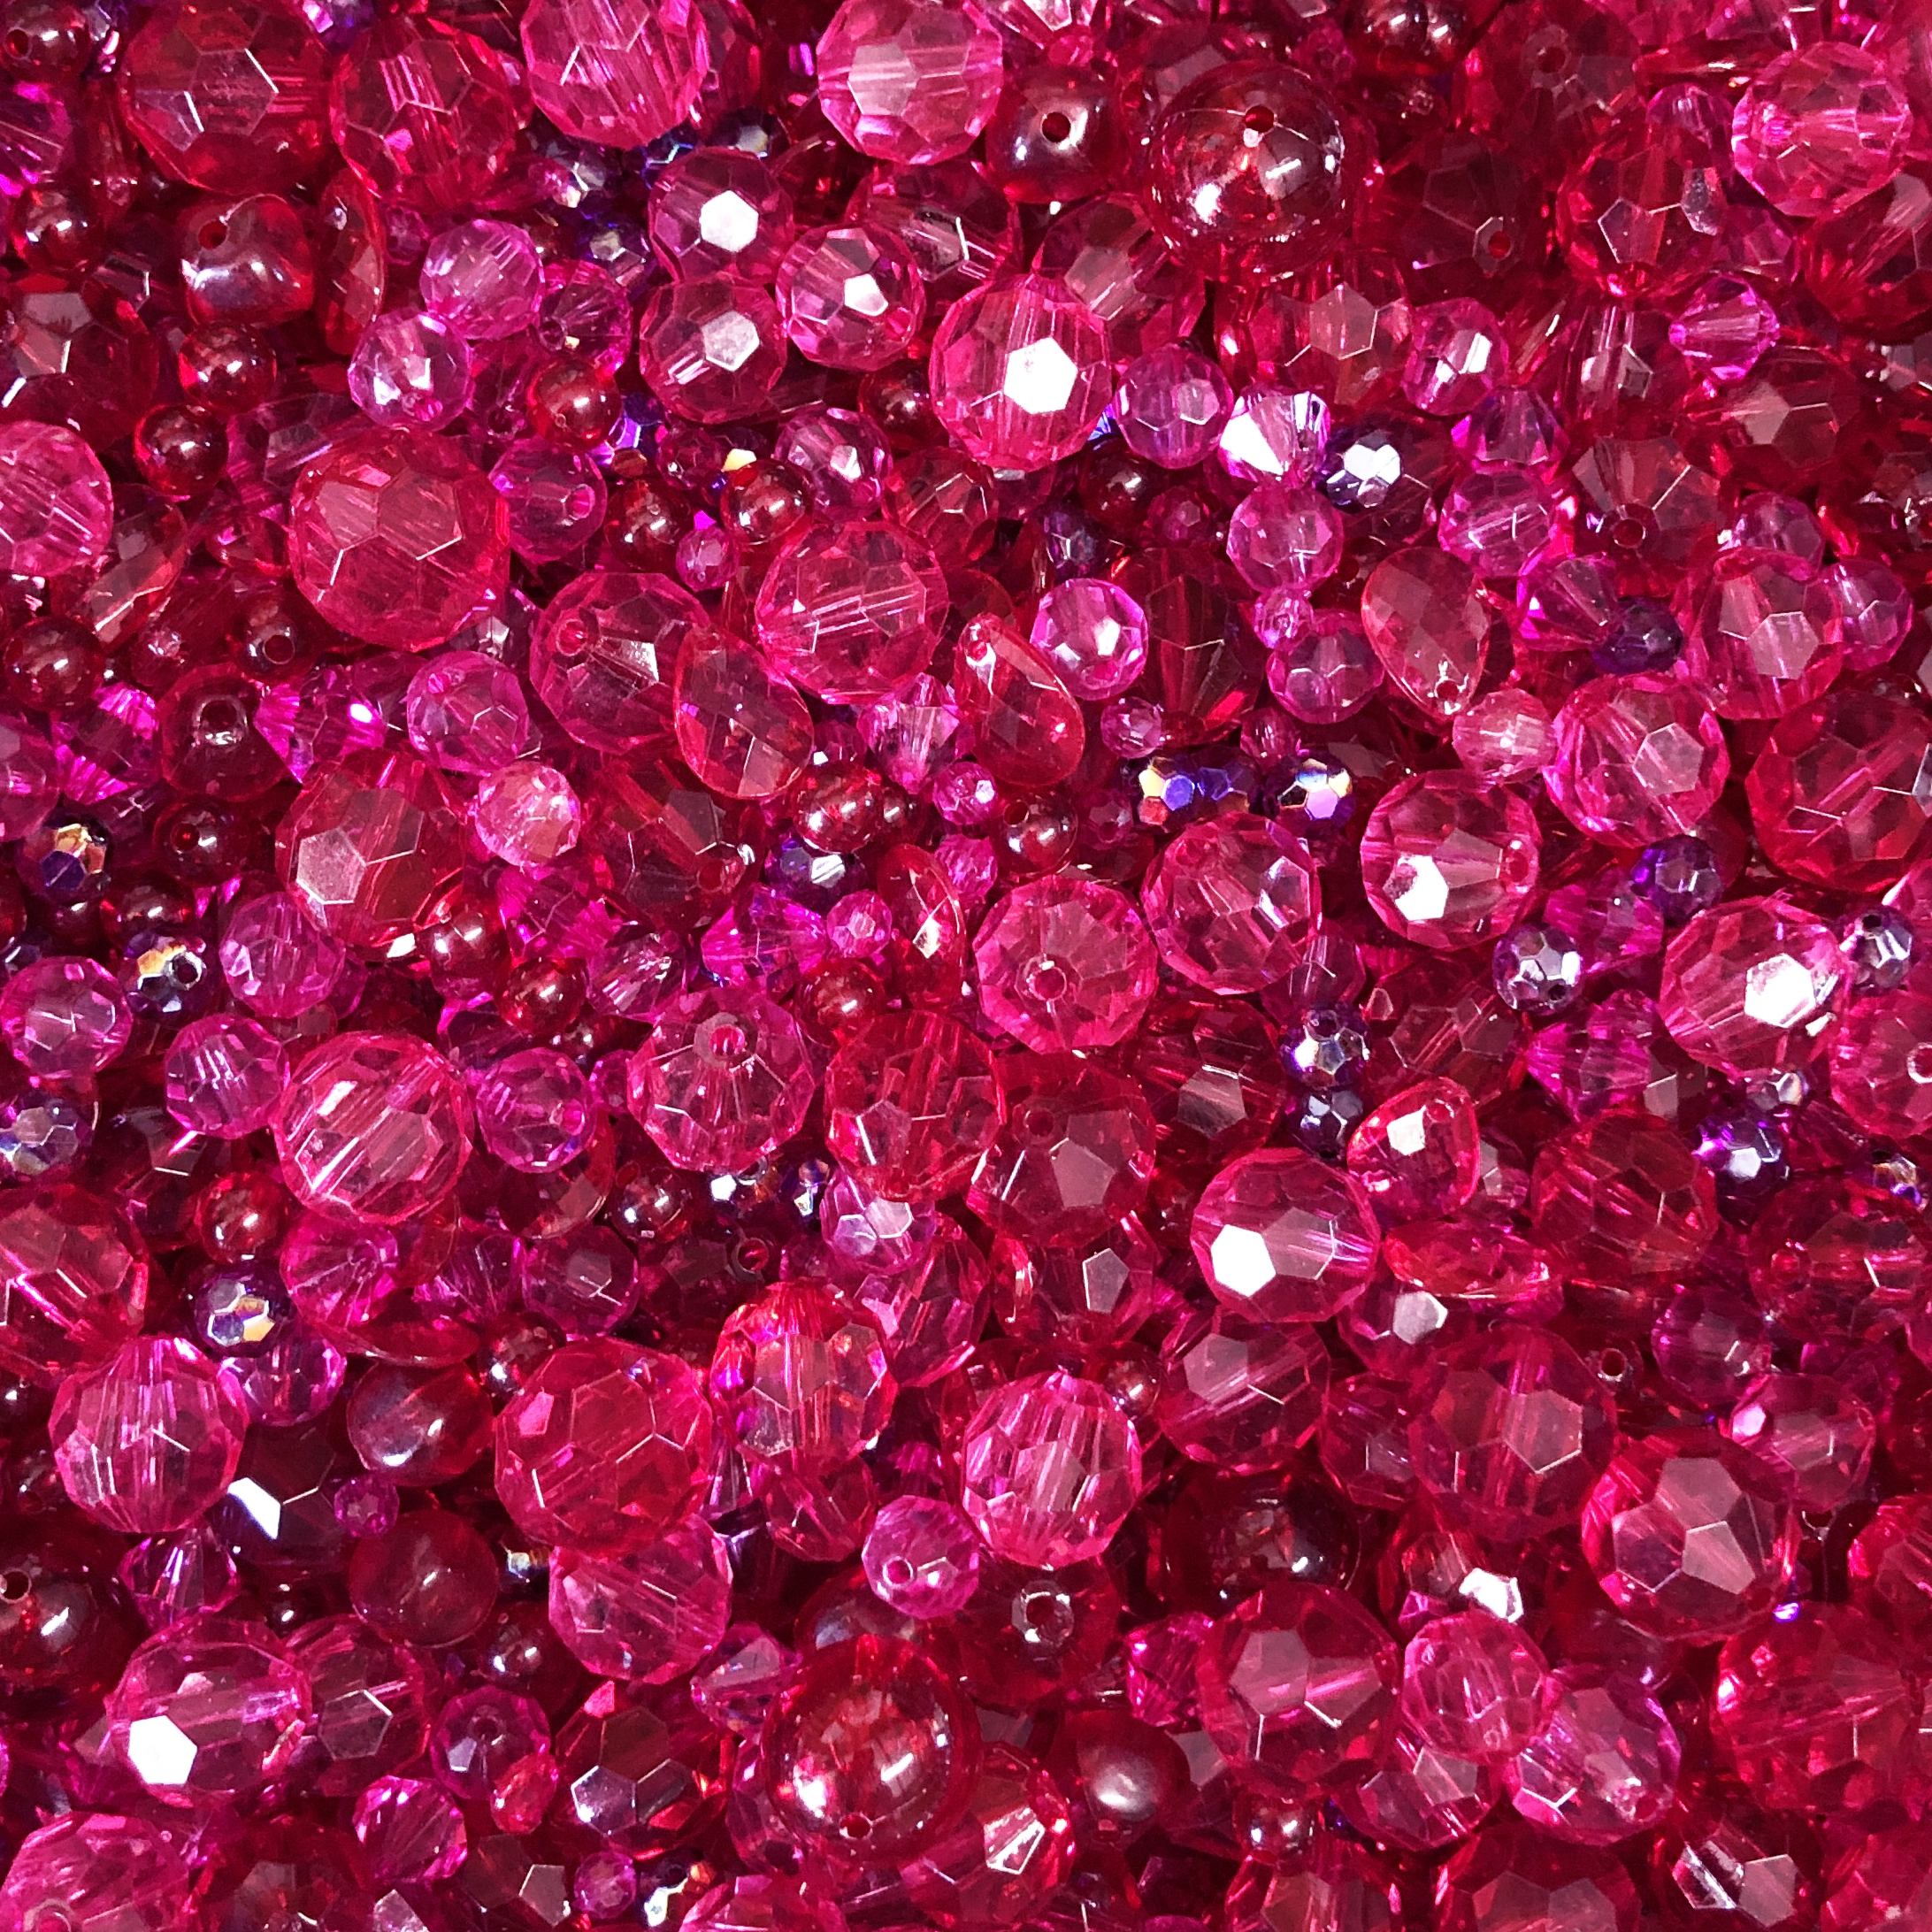 Acrylic Bead Mix, Fucshia Riot Bead Mix, 0911, mixed pink beads, assorted beads, beading supplies, jewelry making supplies, vintage jewelry supplies, faceted beads, mixed beads, bicone beads, red beads, briolettes, round beads